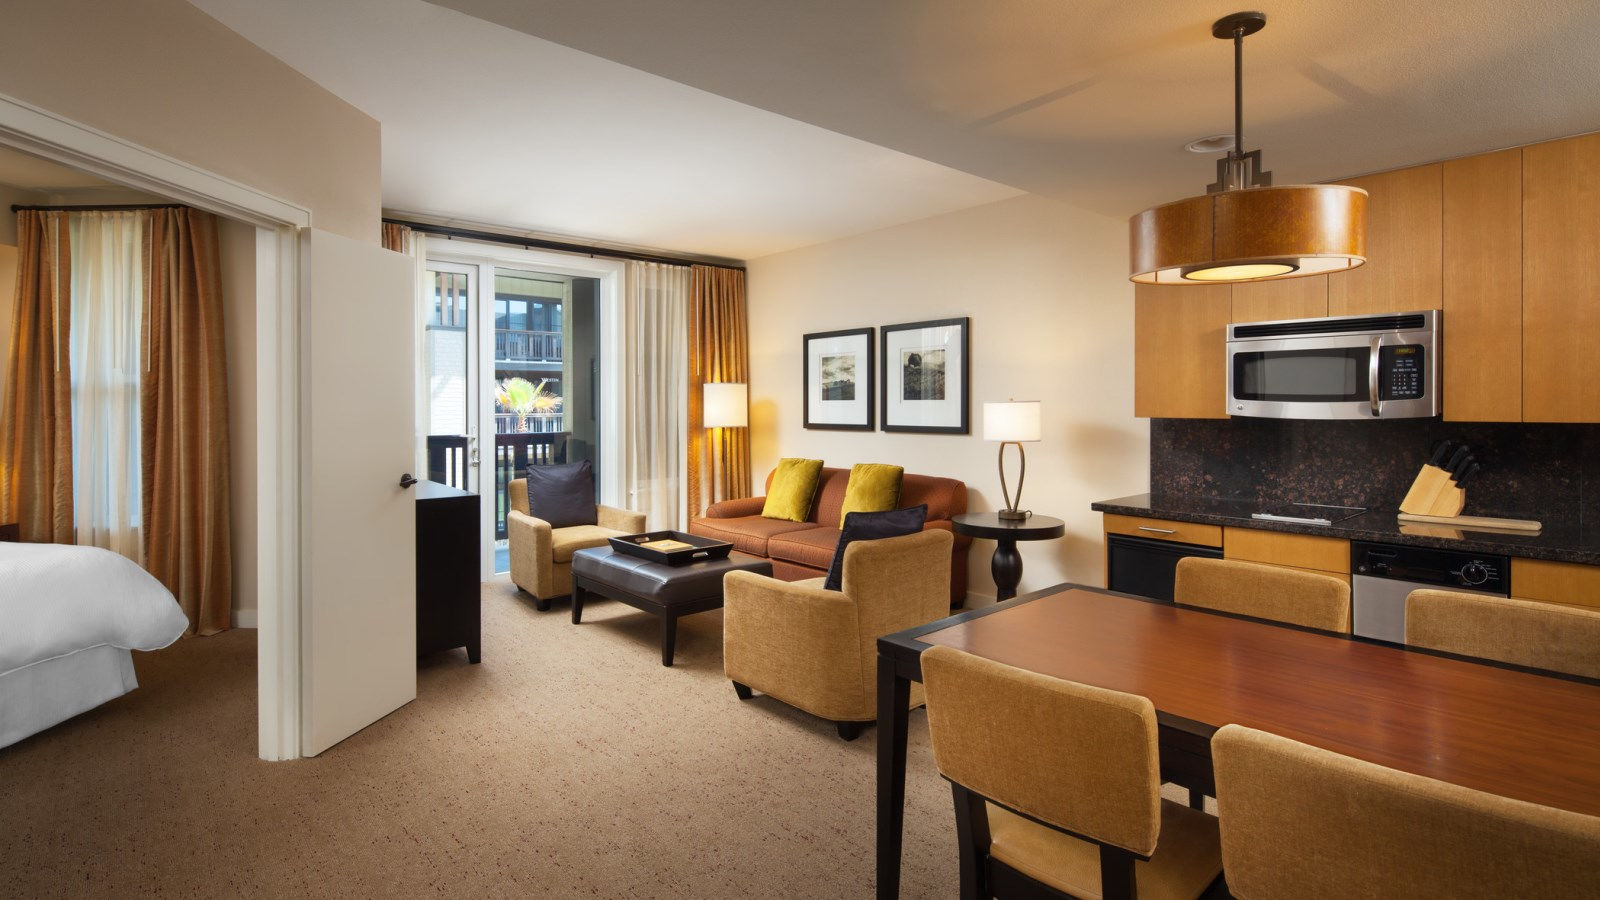 The Westin Verasa Napa Hotel - One Bedroom King Suites